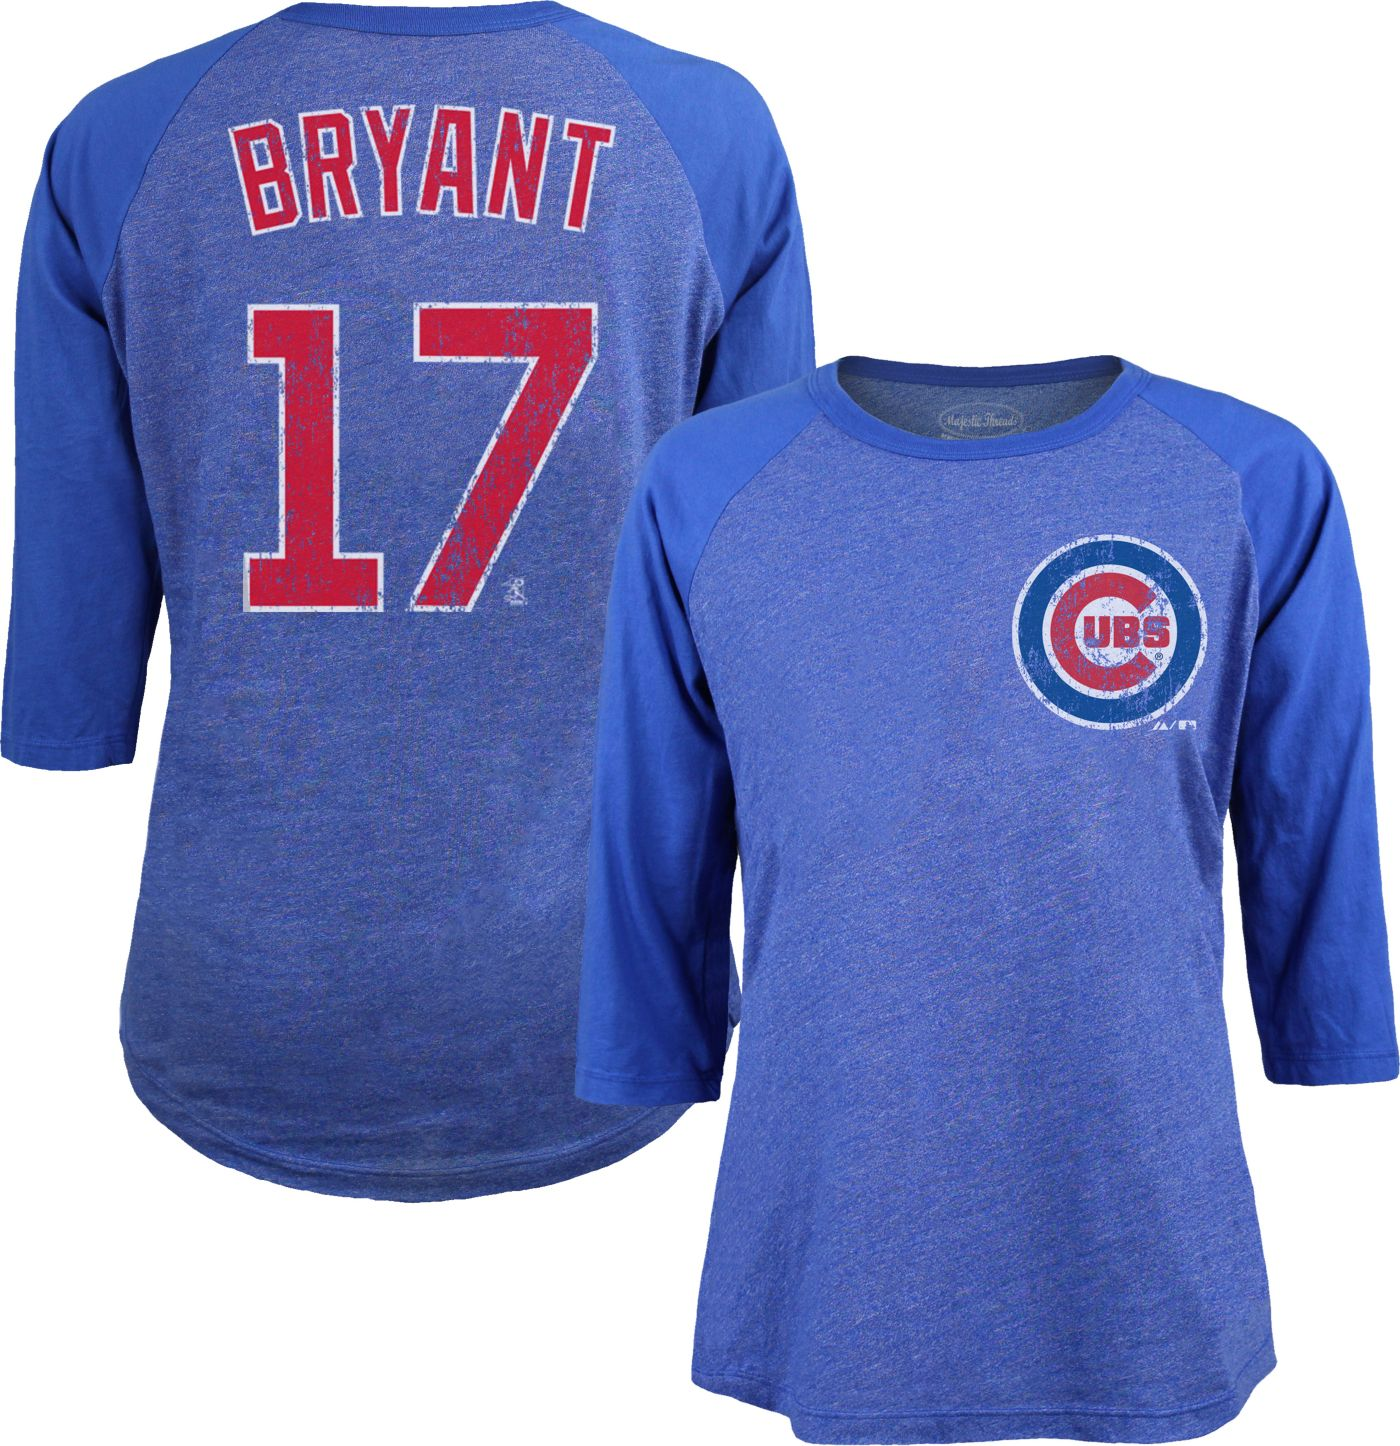 Majestic Threads Women's Chicago Cubs Kris Bryant #17 Raglan Royal Three-Quarter Sleeve Shirt